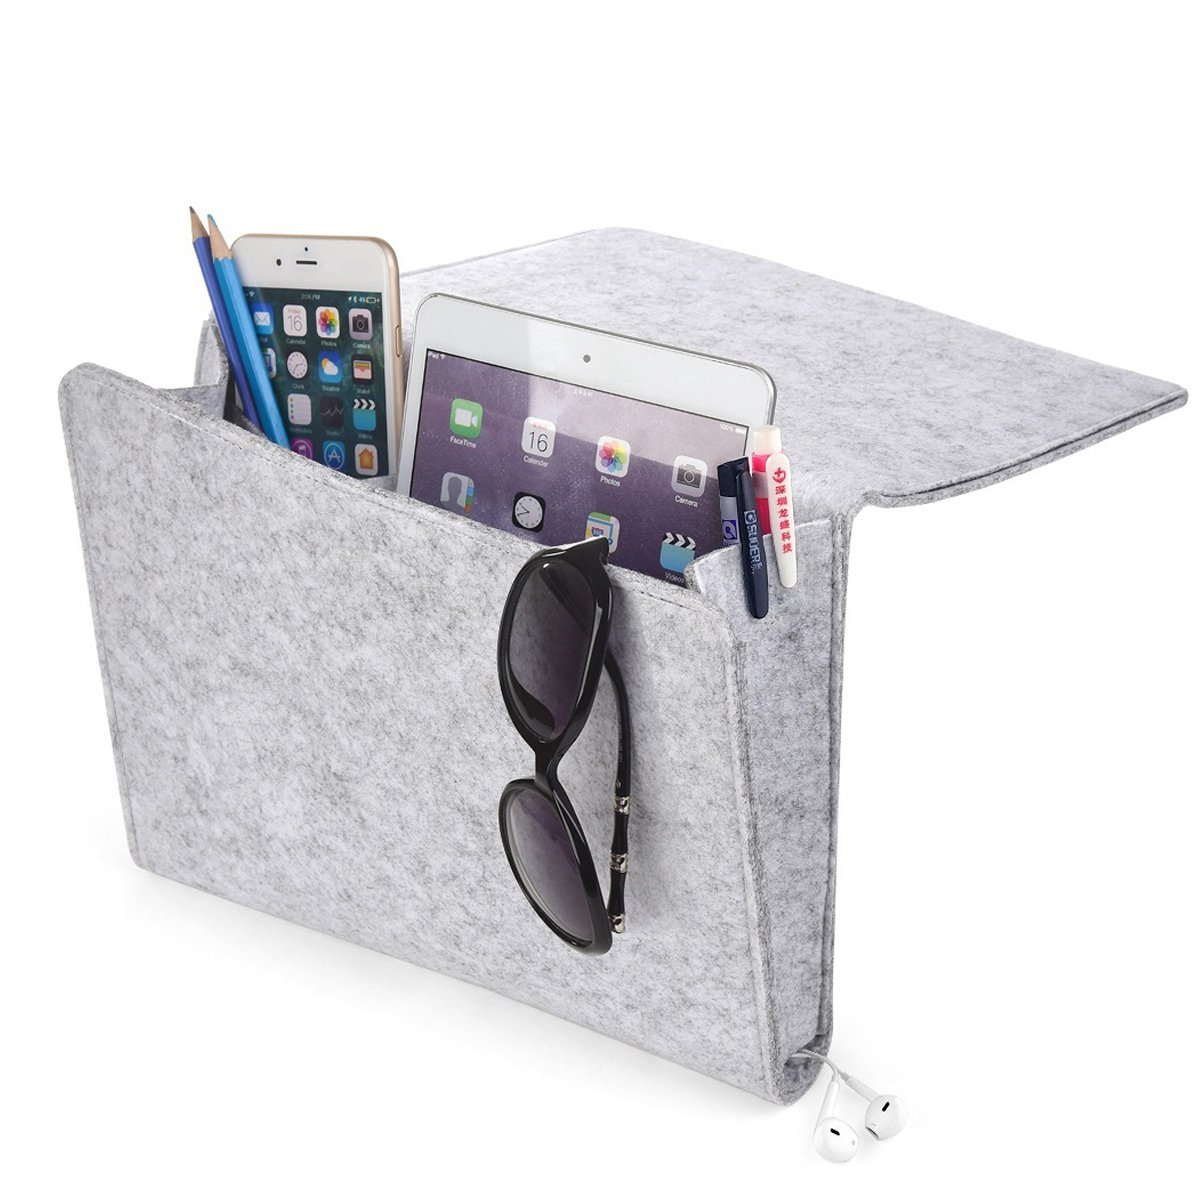 Thicker Bedside Pocket, Felt Bedside Caddy Home Sofa Desk Bed Caddy Storage Organizer with Cable Holes 2 Small Pockets for Organizing Tablet Magazine Phone Small Things Holder